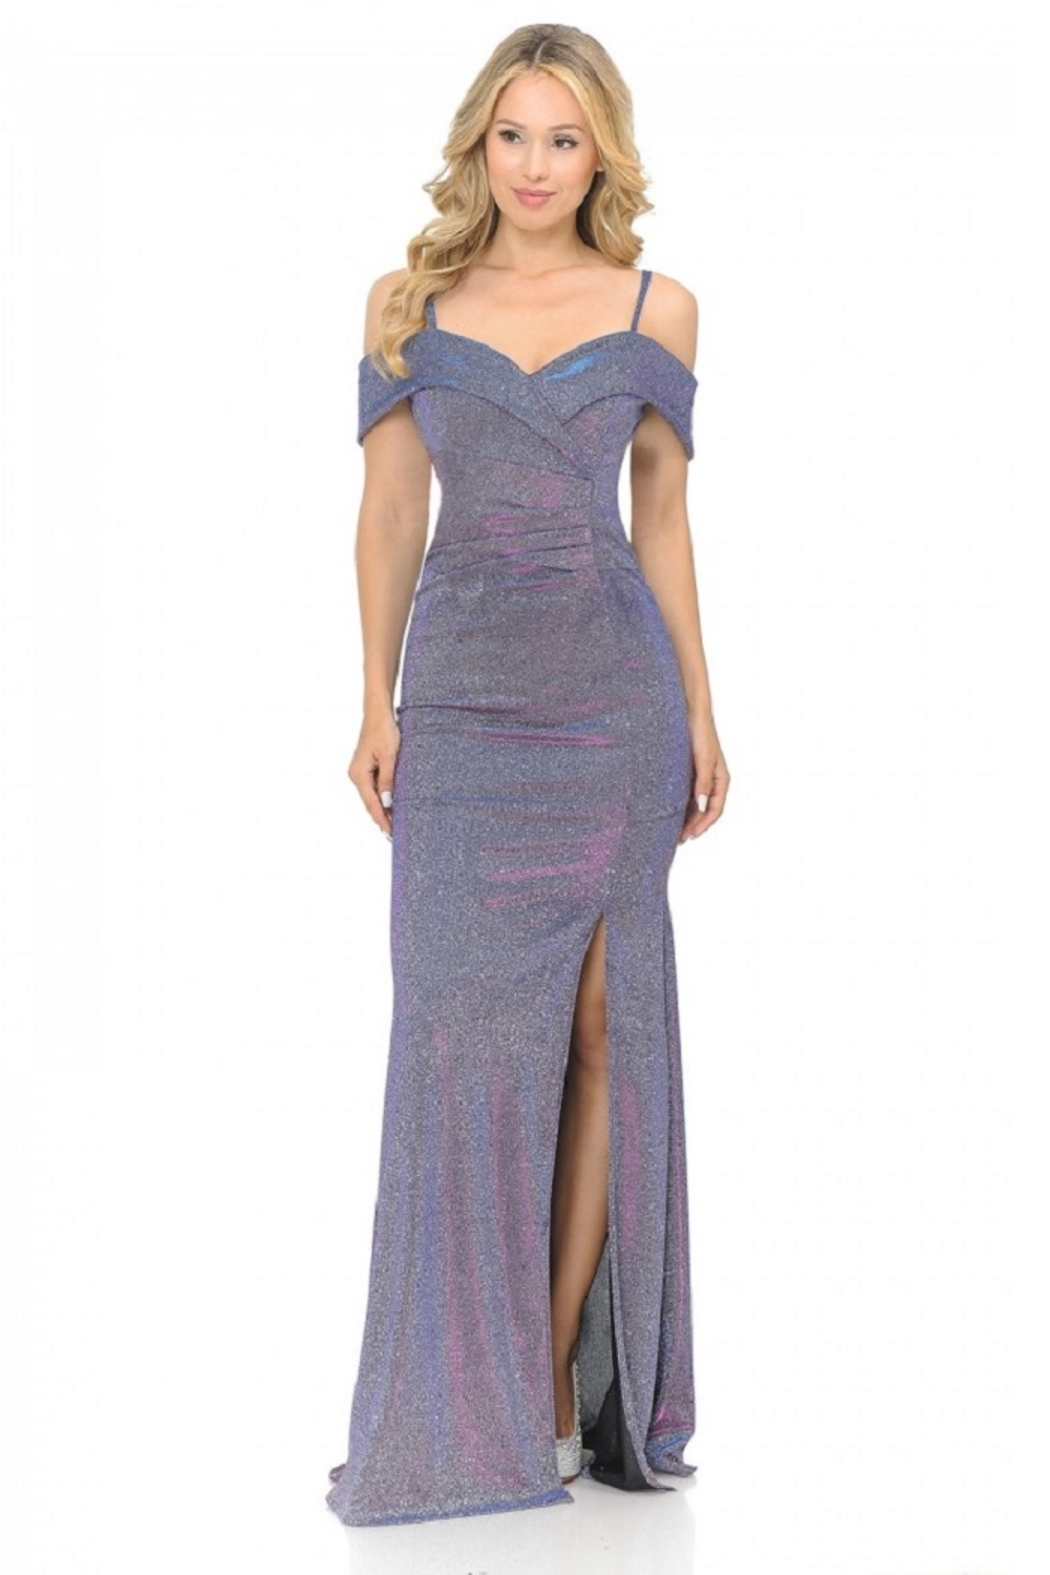 Lenovia  Off The Shoulder Purple Metallic Fit & Flare Long Formal Dress - Main Image